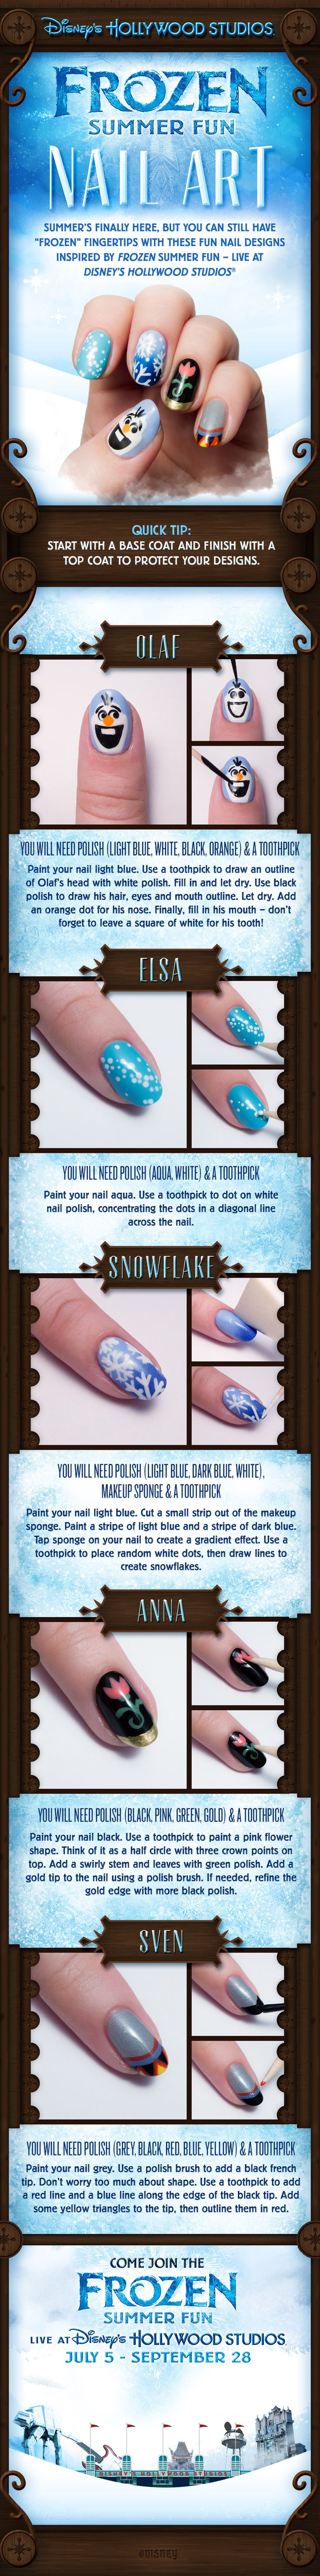 Visiting Disney's Hollywood Studios at Walt Disney World to check out Frozen Summer Fun? Show your love for your favorite Frozen characters with this cool nail art tutorial, including Olaf, Anna, and Elsa!